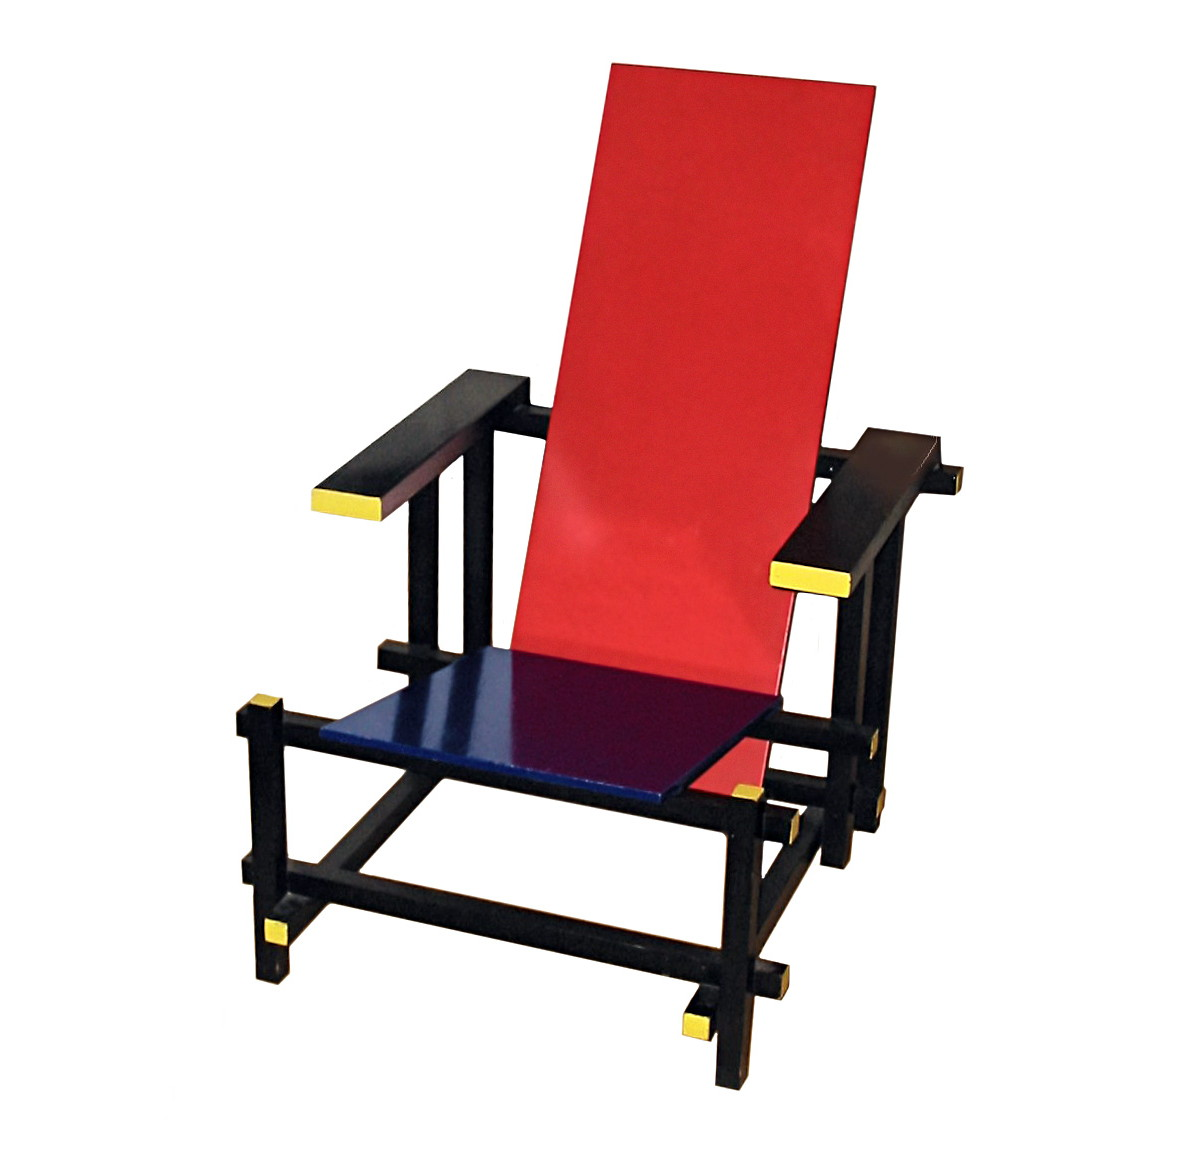 File Rietveld chair 1bb Wikimedia mons